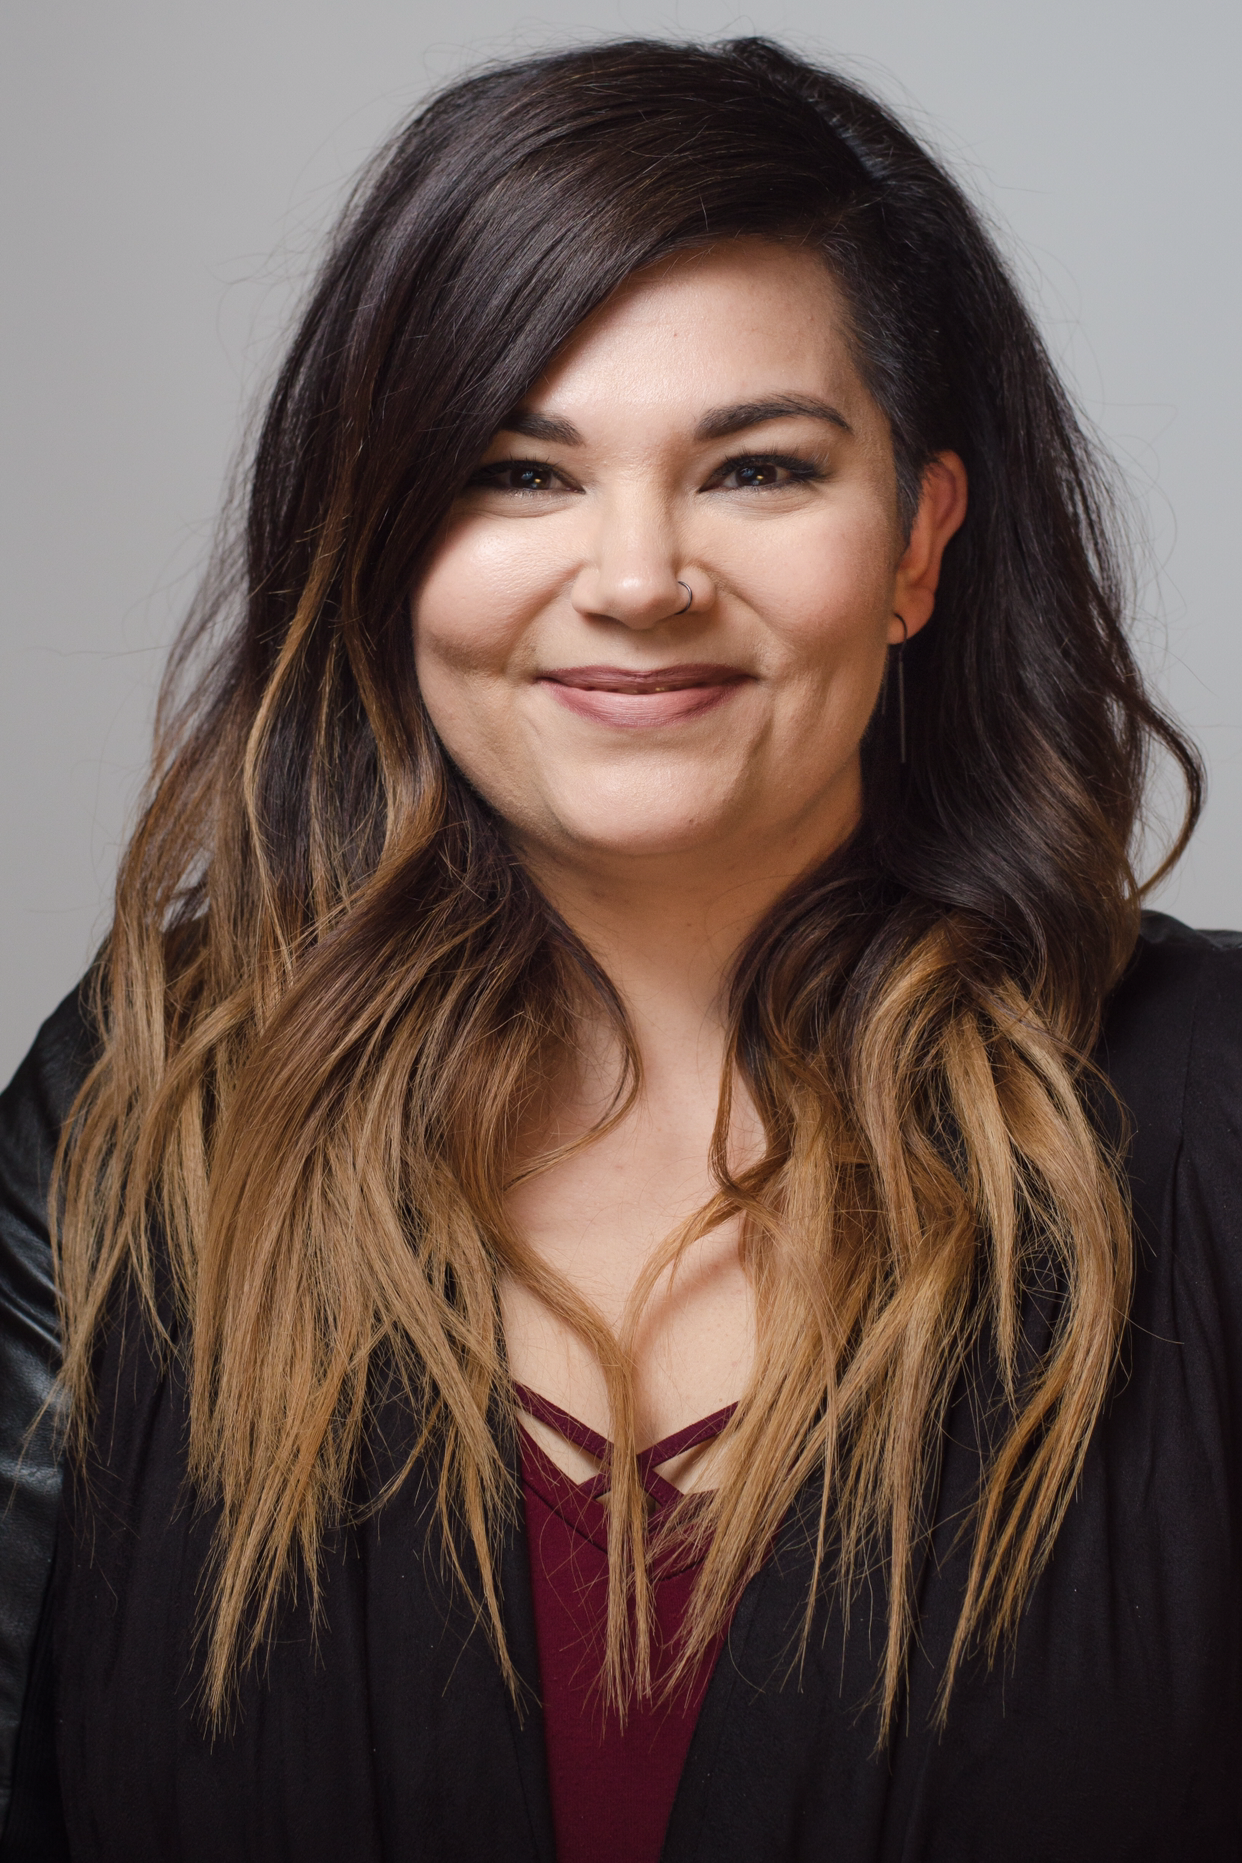 - Morgan Jae is a hair+makeup artist who has over 12 years of experience, spanning from the midwest to Los Angeles. She specializes in enhancing natural beauty, as opposed to painting completely over it.